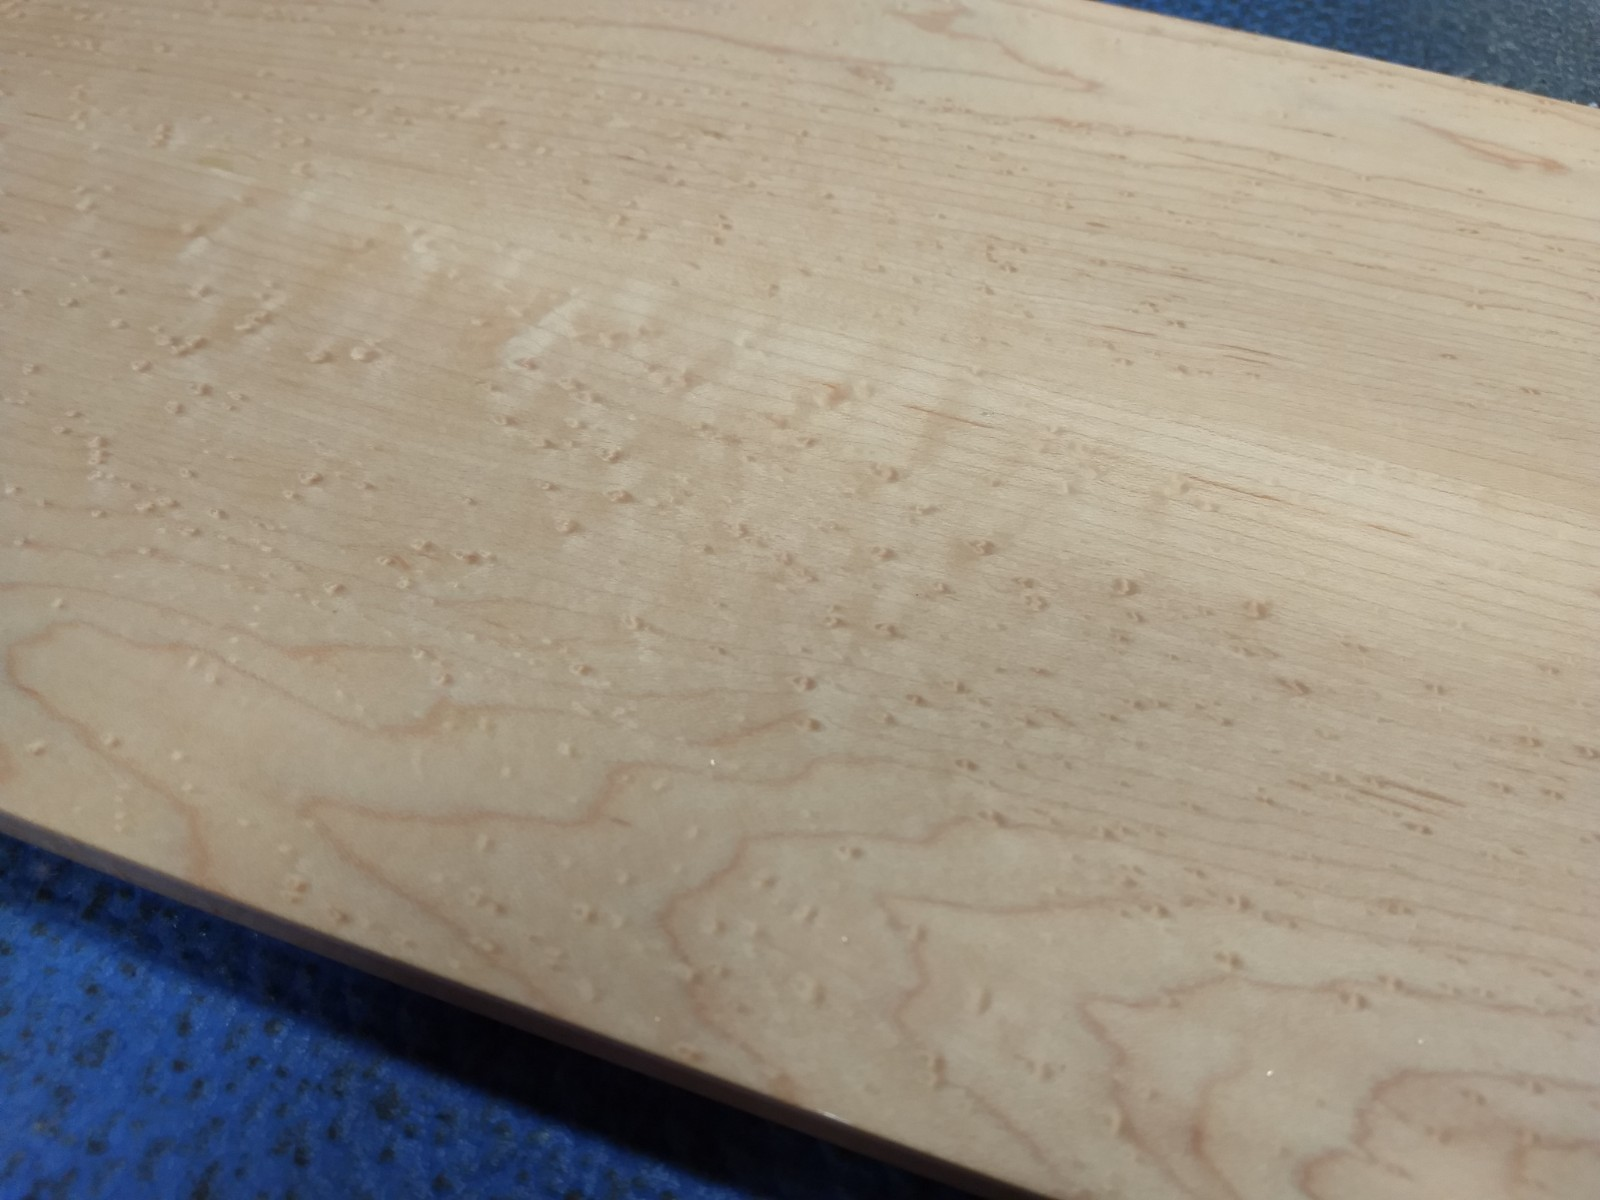 Surface after wet sanding